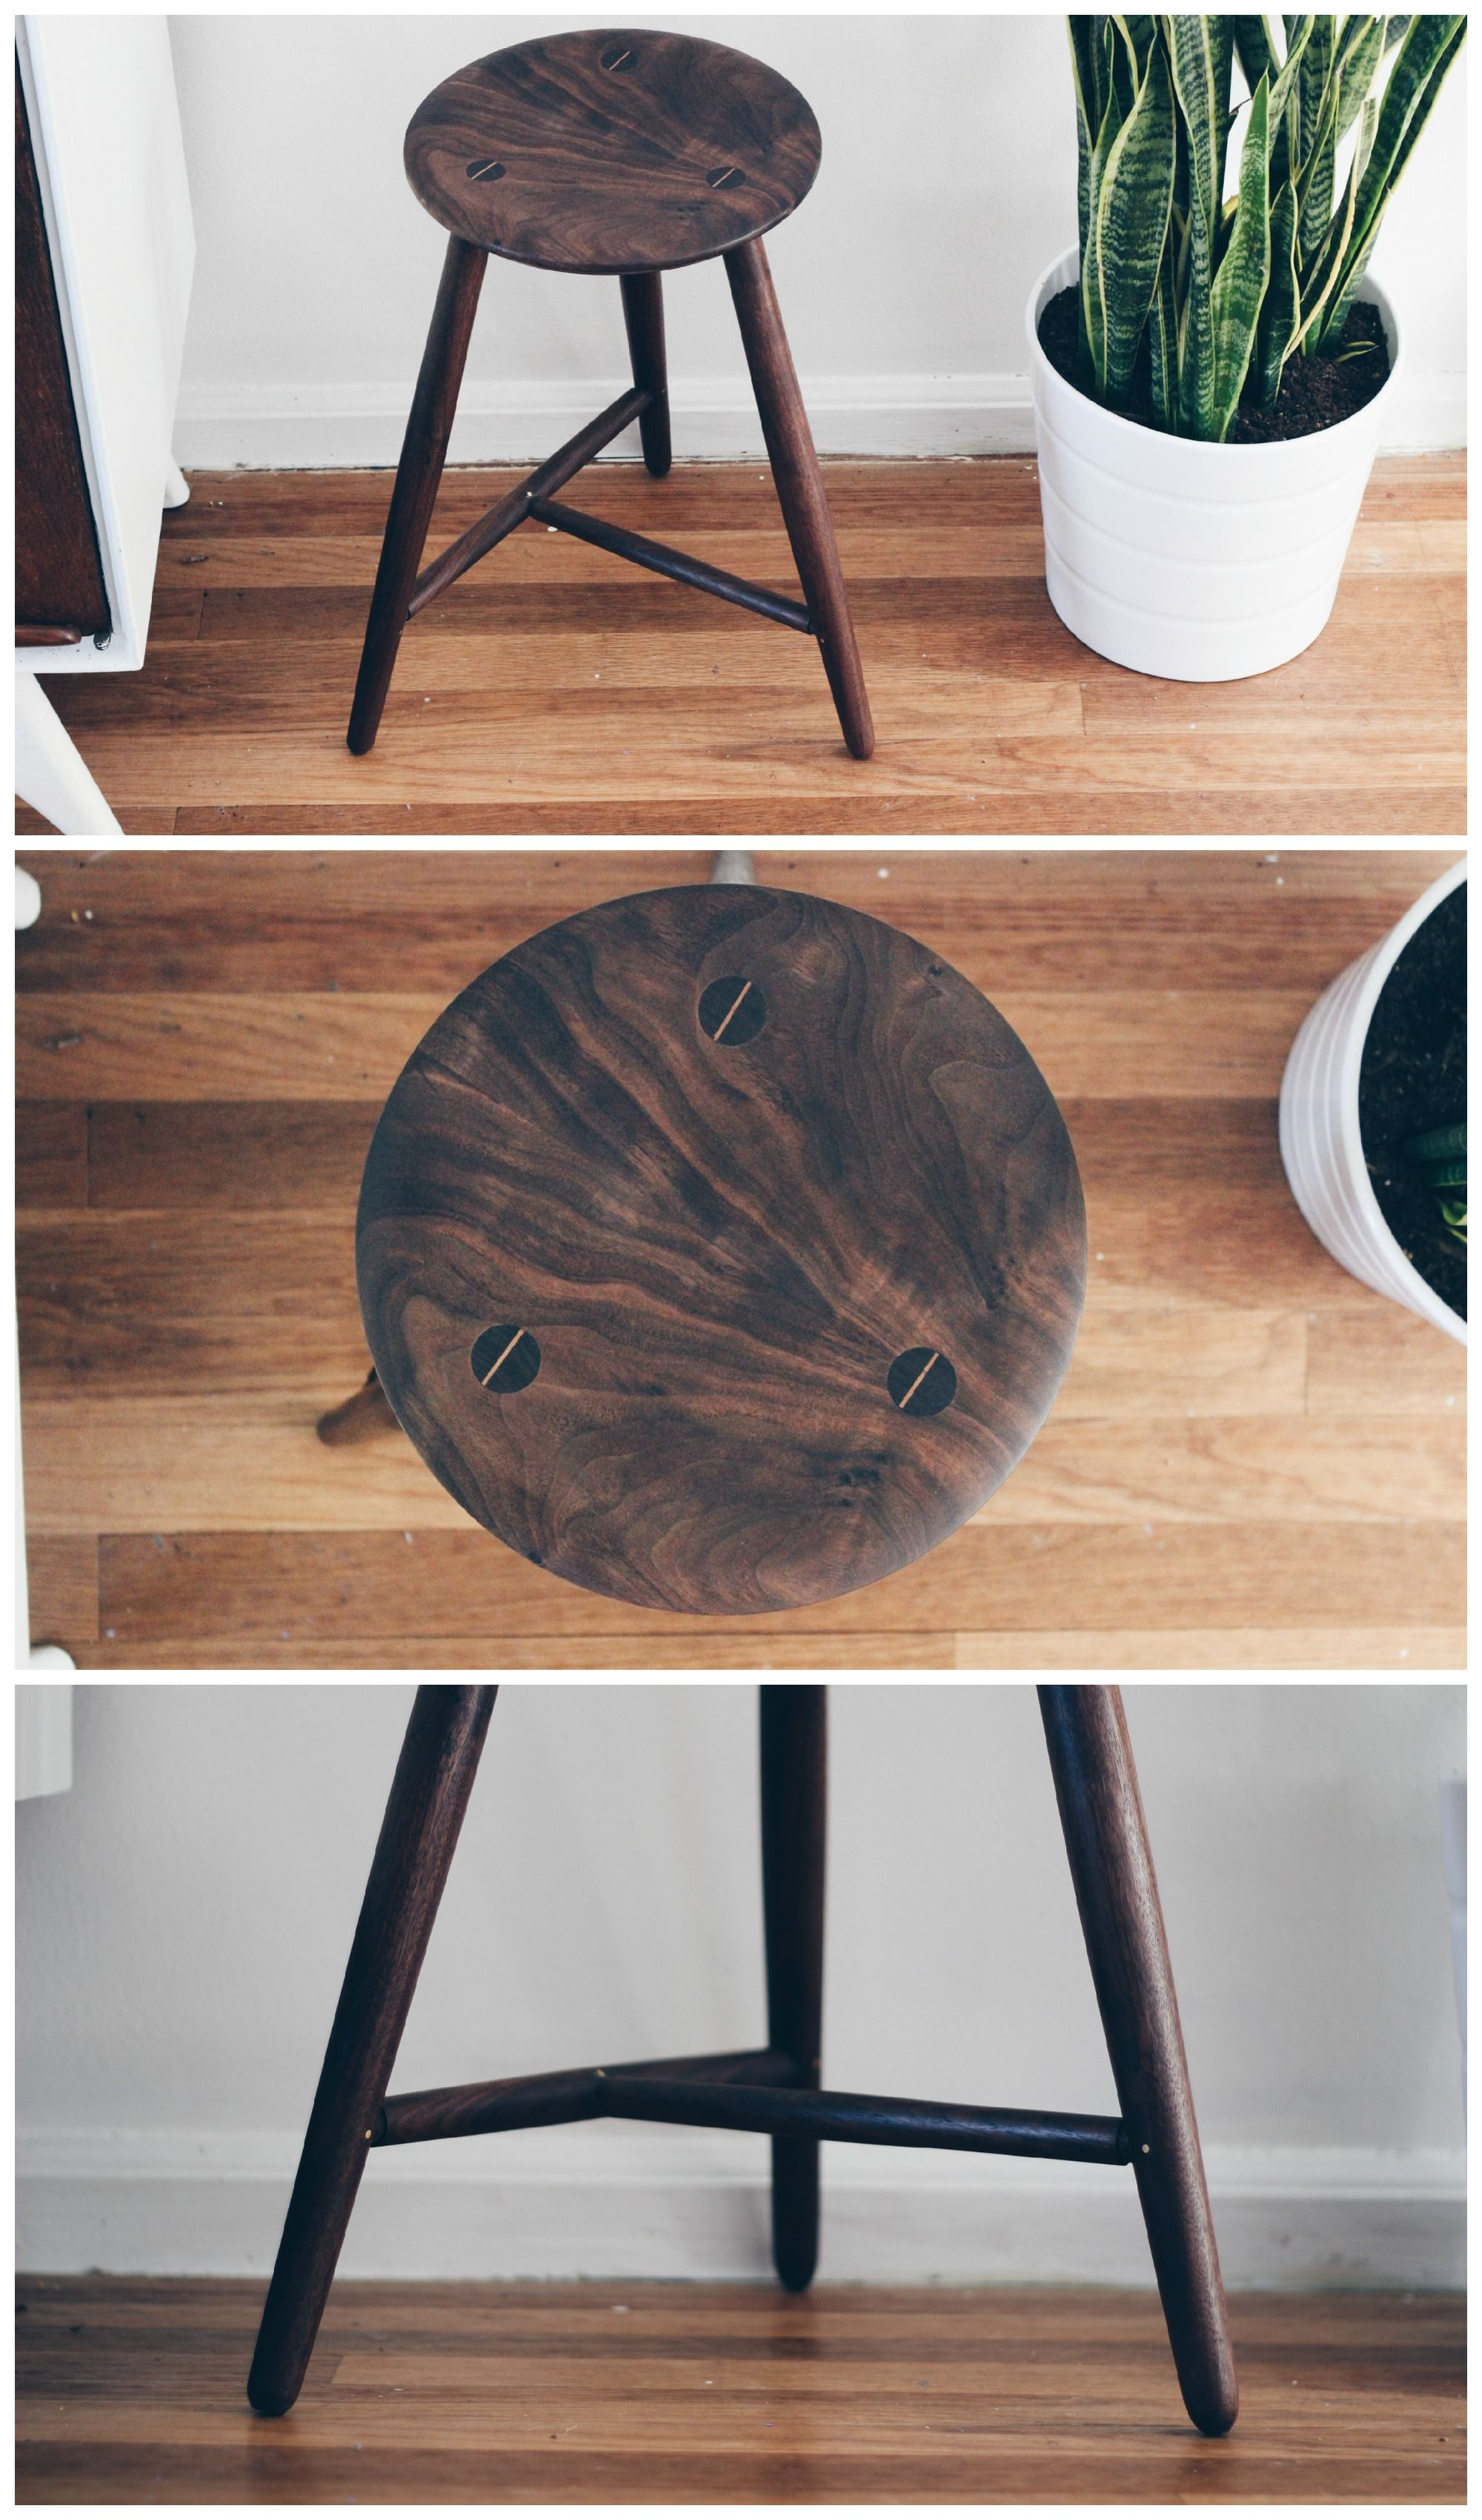 Vintage Italian wooden stool. The round seat and three legs give ...